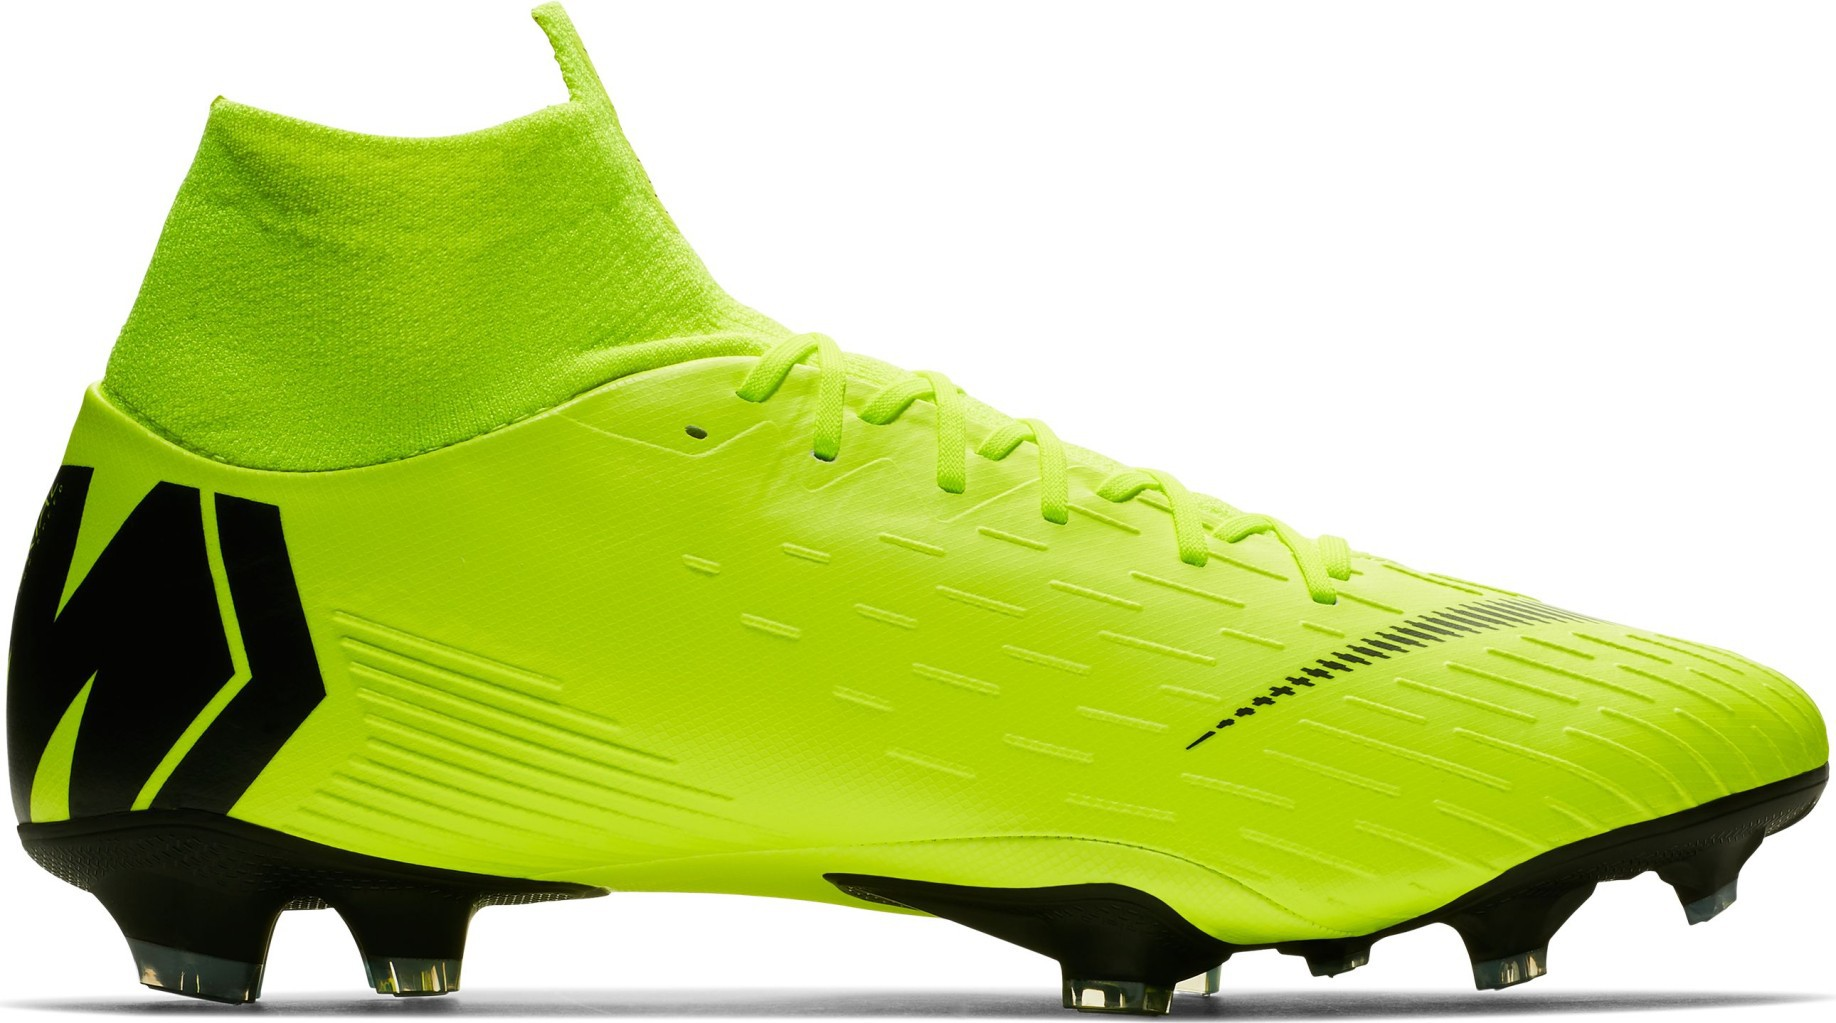 085a72092 Soccer shoes Nike Mercurial Superfly VI Pro FG Always Forward Pack colore  Yellow Black - Nike - SportIT.com